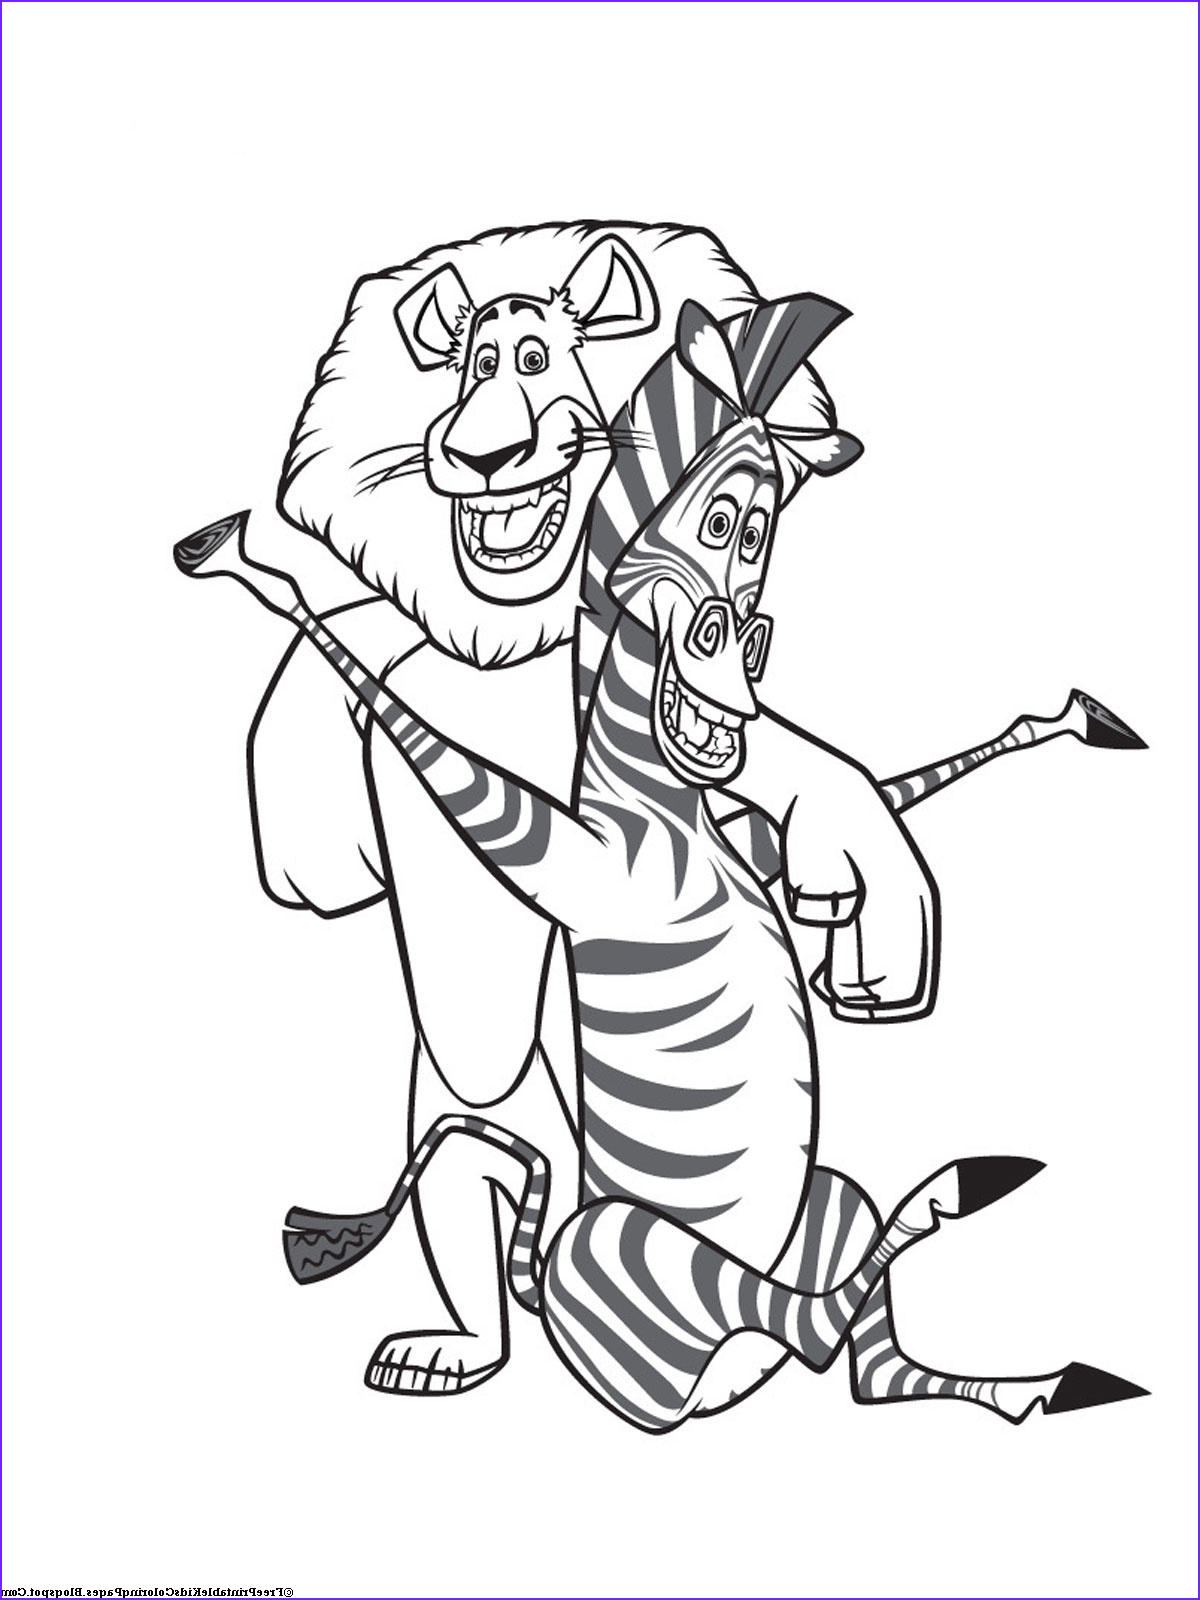 Zebra Coloring Pages Inspirational Photos Zebra Coloring Pages Free Printable Kids Coloring Pages